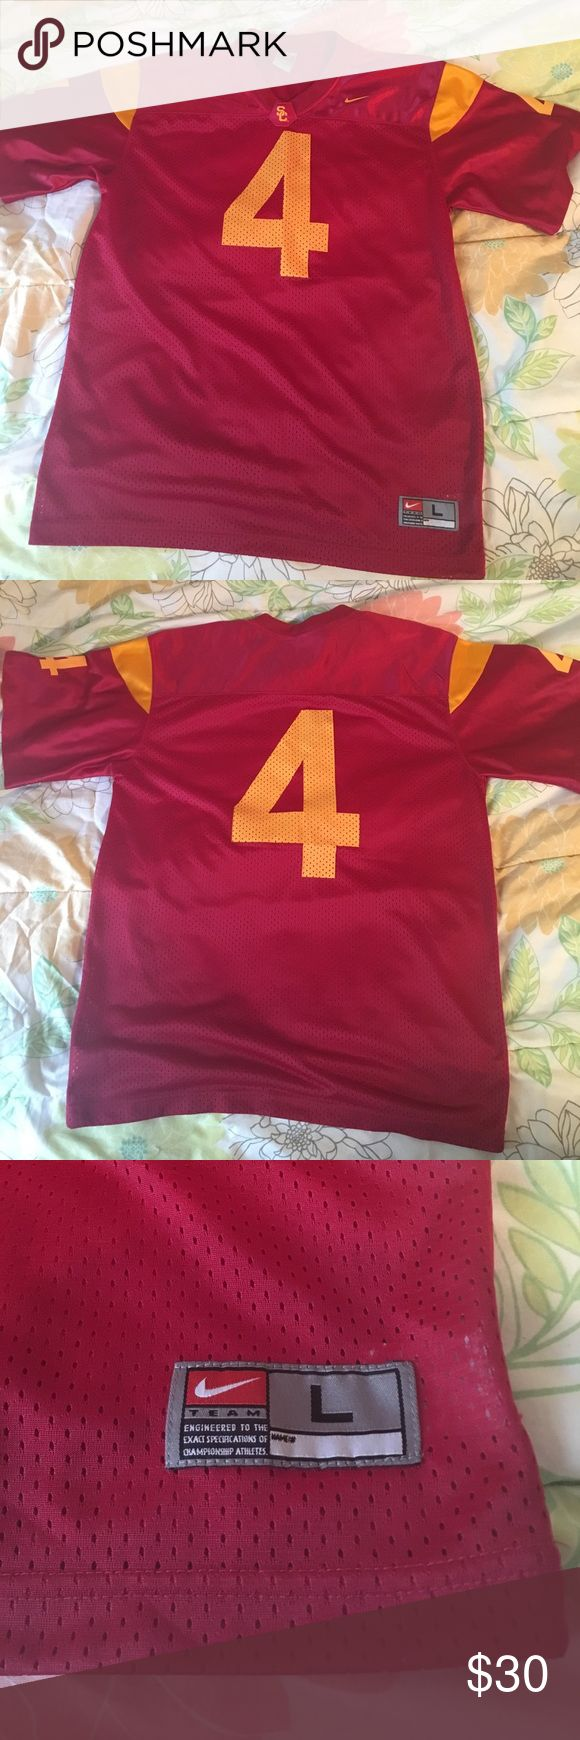 NWOT USC Nike Football Jersey #4, size large This Nike college football jersey is brand new without tags. It is a size large (I believe it's unisex, so it could also fit smaller men). It is University of Southern California. It has the number 4 on both front and back. Nike Tops